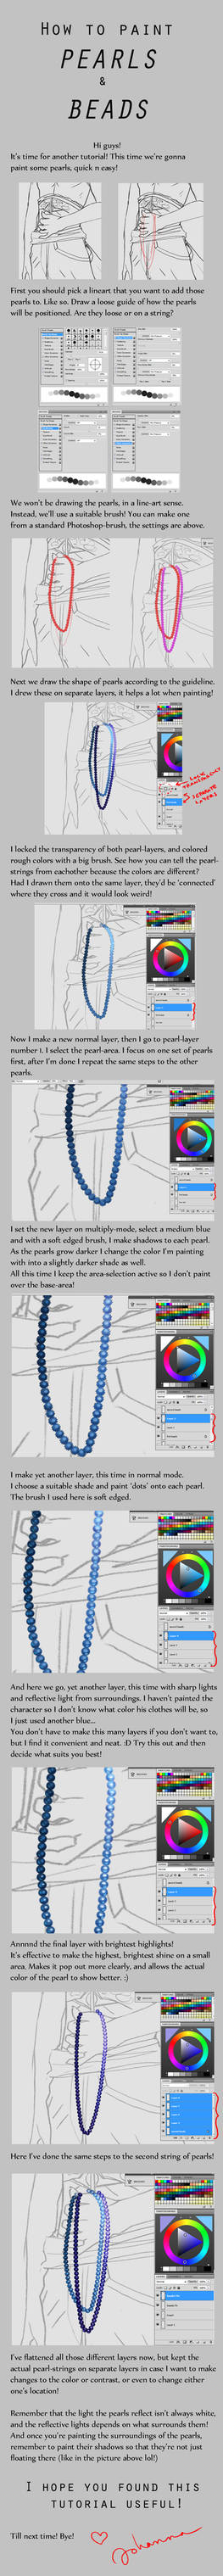 How to paint Pearls